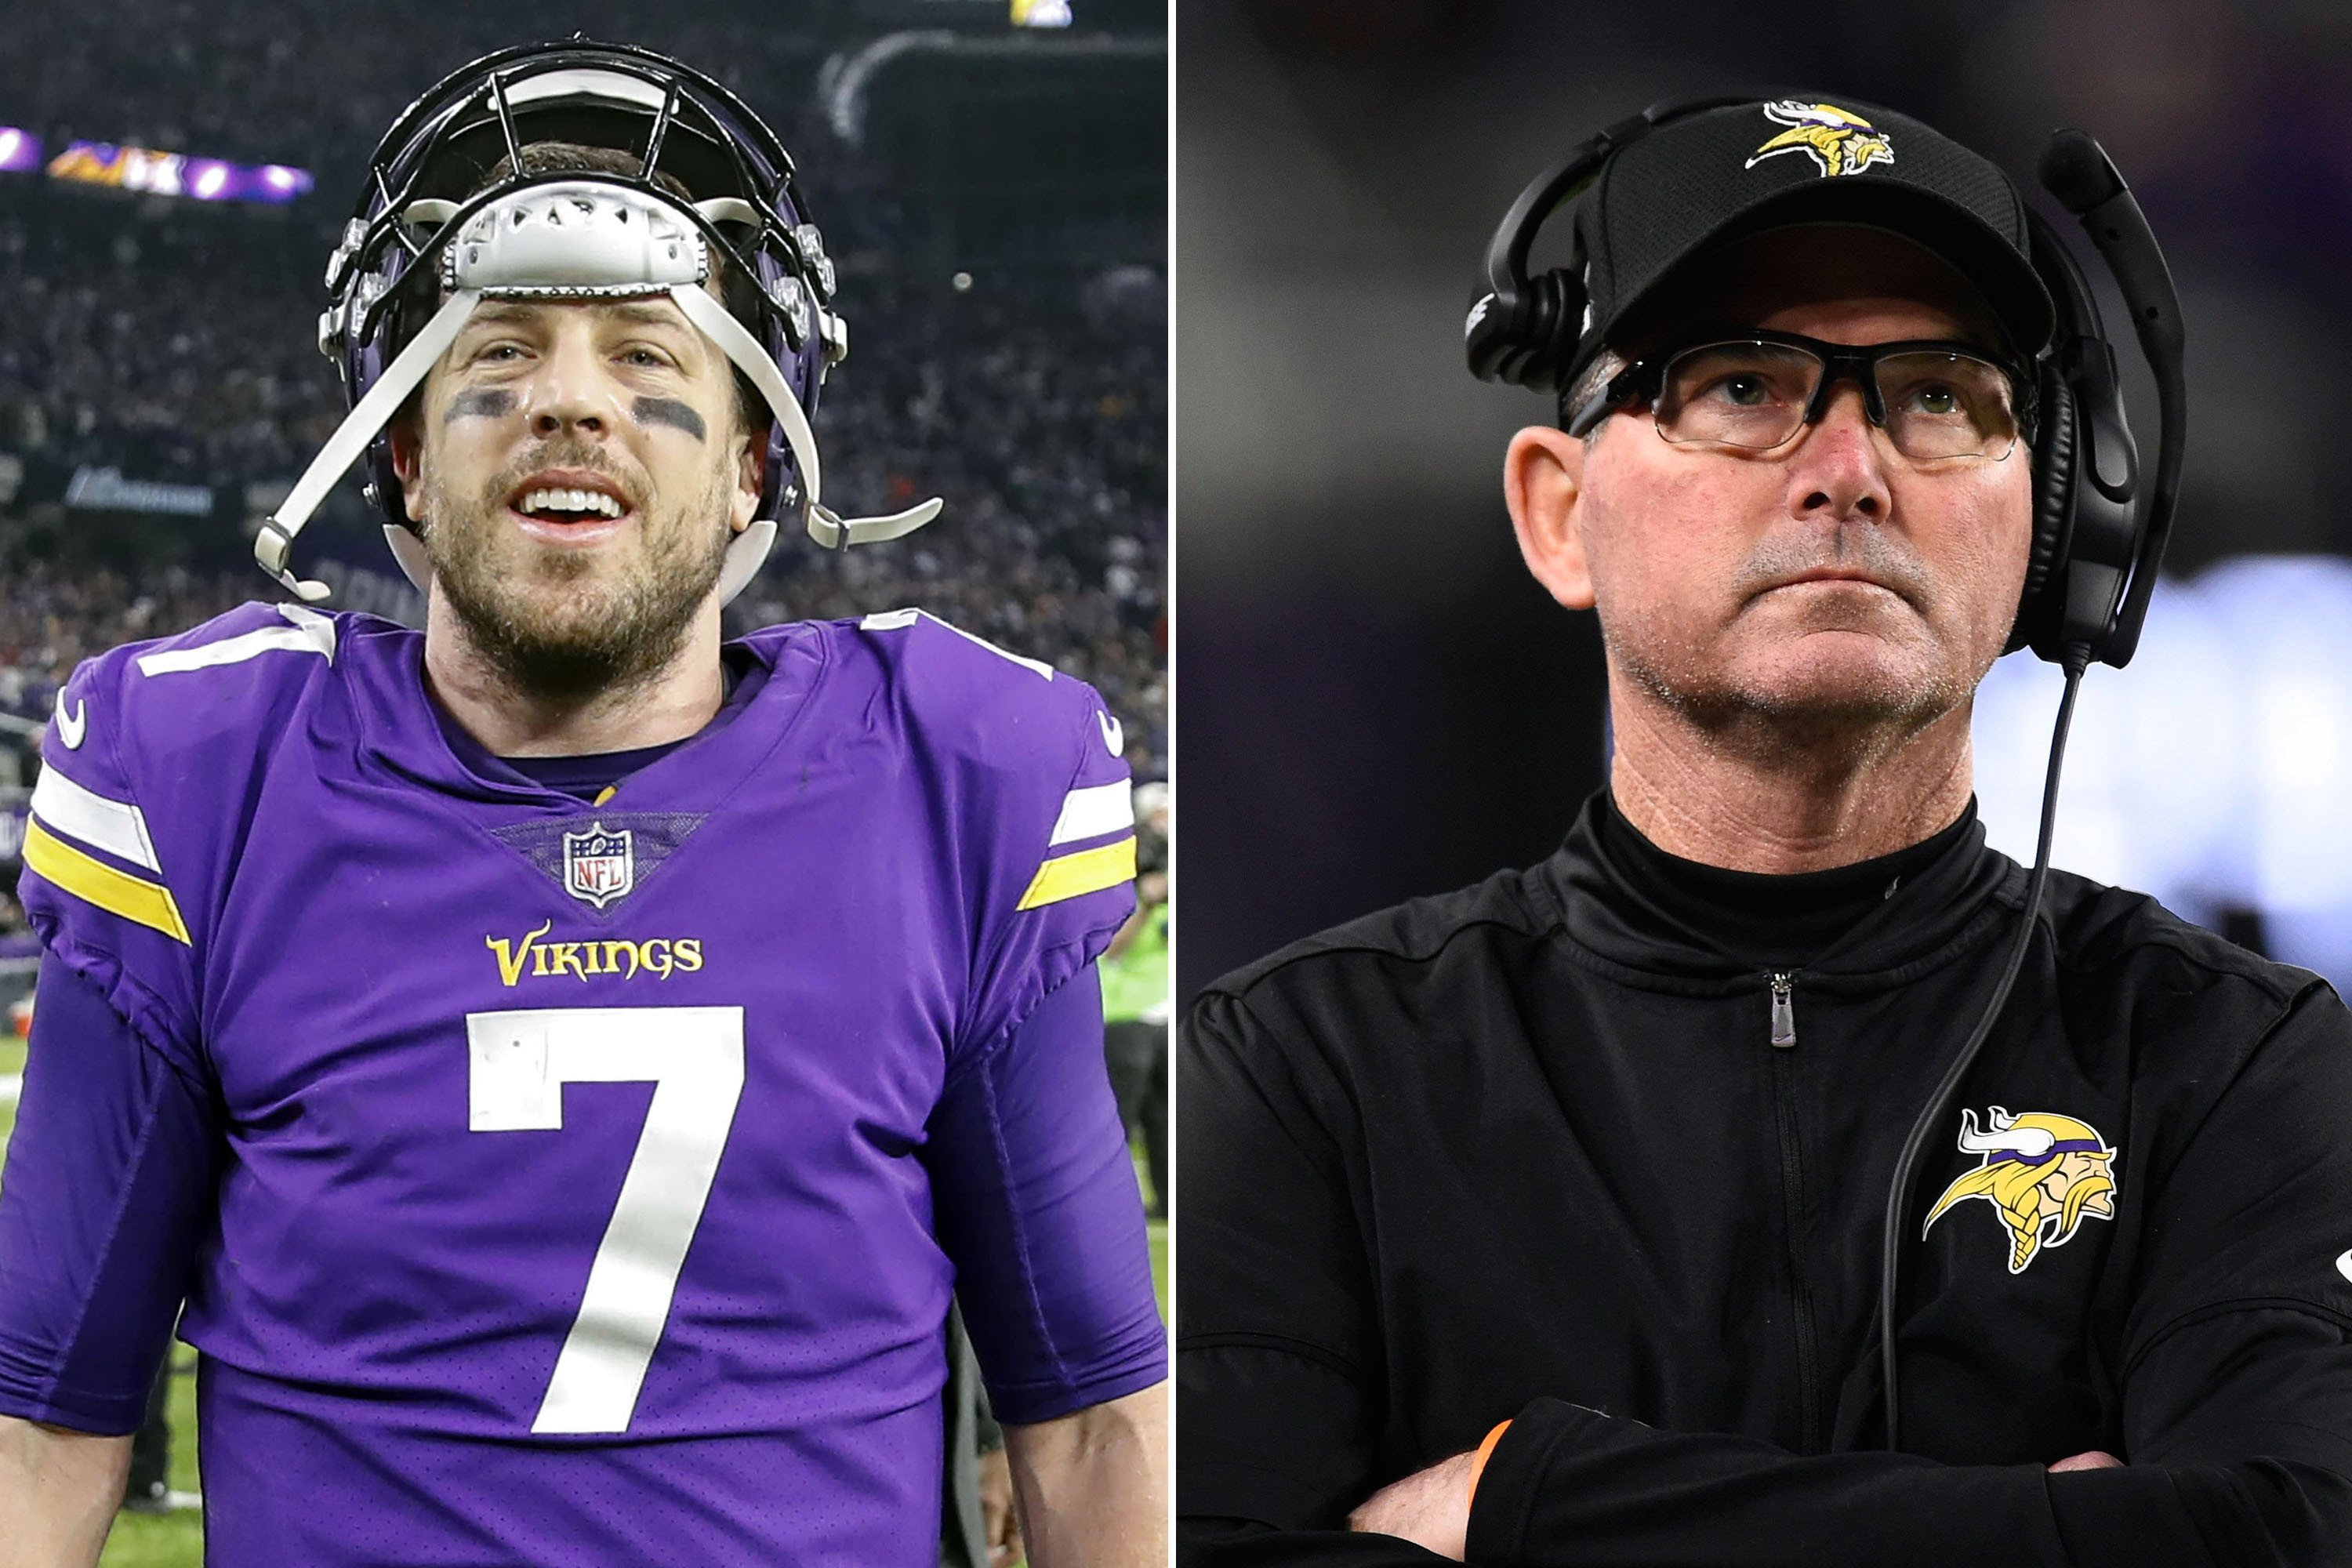 Vikings lucky to have Keenum, even if Zimmer won't admit it